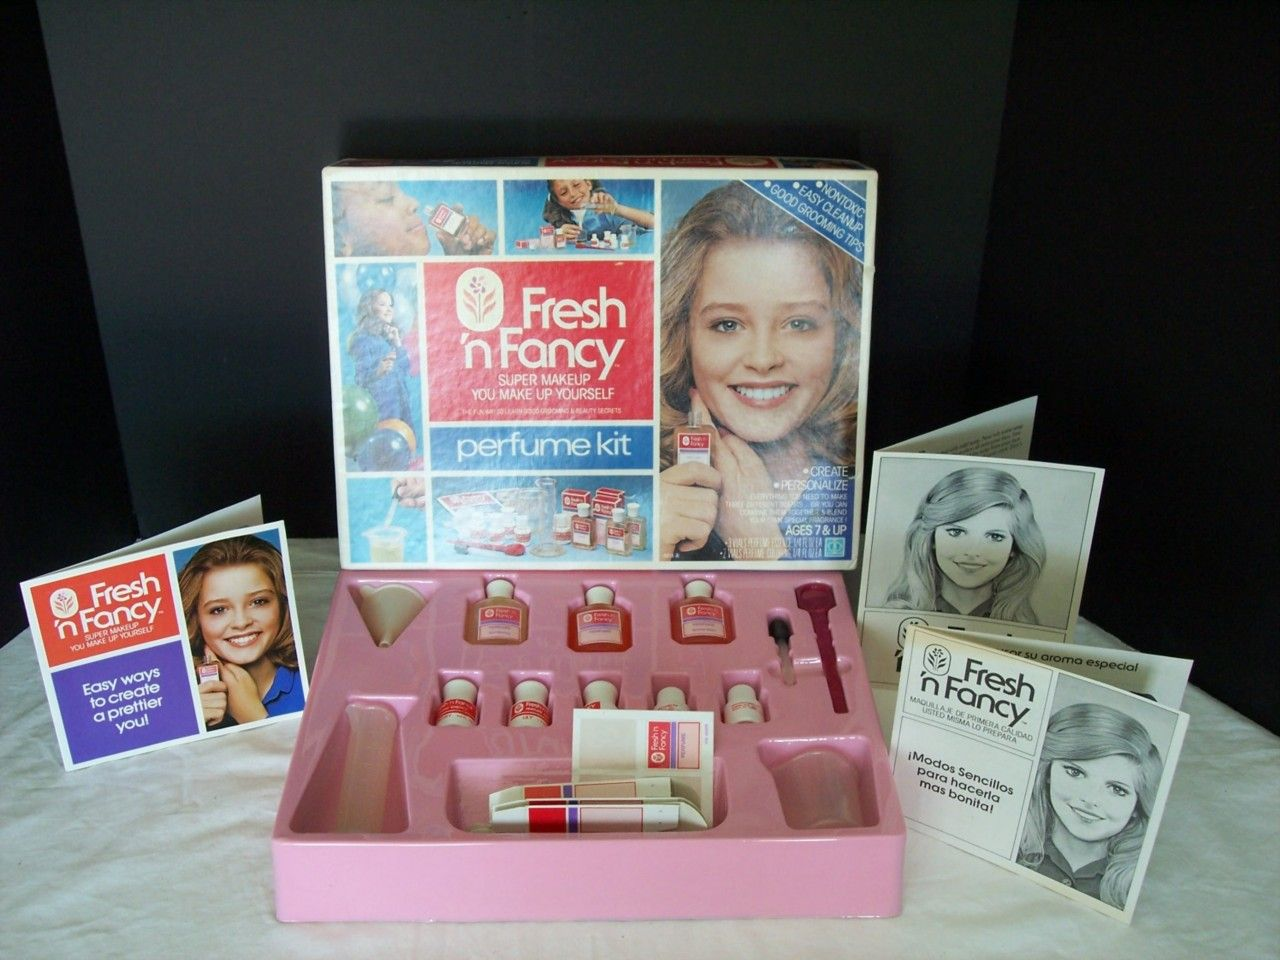 Fresh and Fancy Perfume Making Kit Loved this toy! How